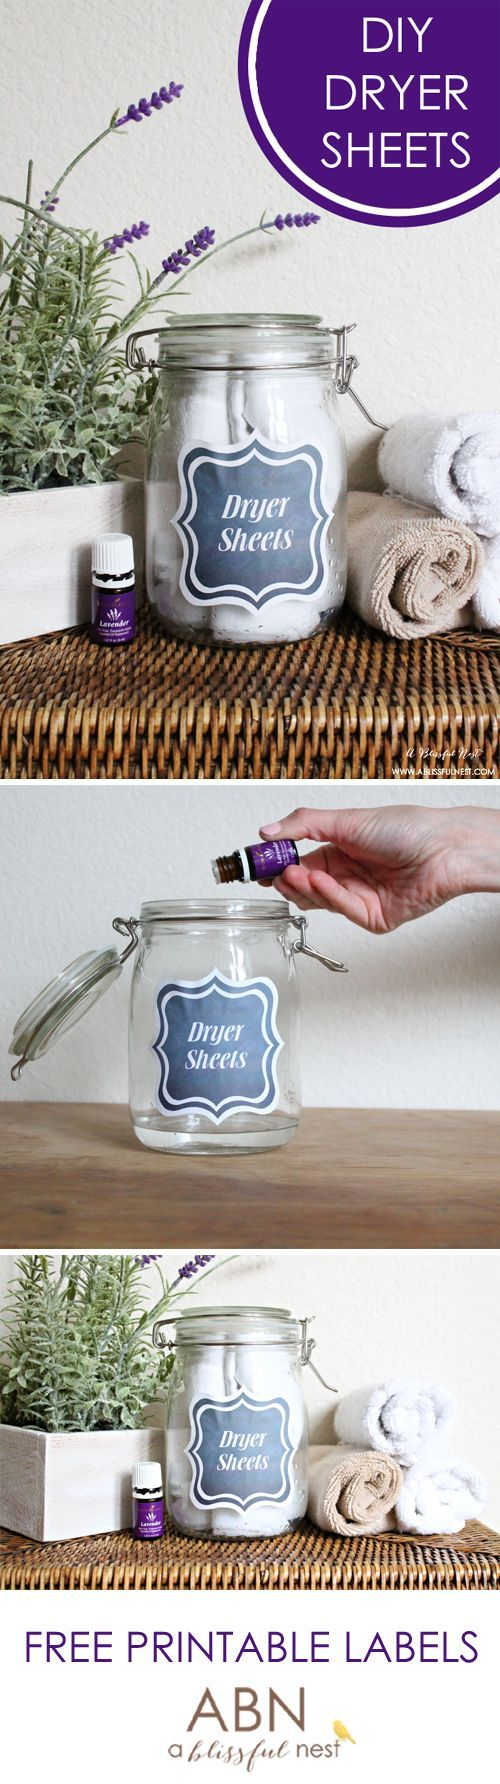 Homemade DIY Dryer Sheets! Love this all natural idea for laundry! It smells great and comes with free printable labels too. Fun!